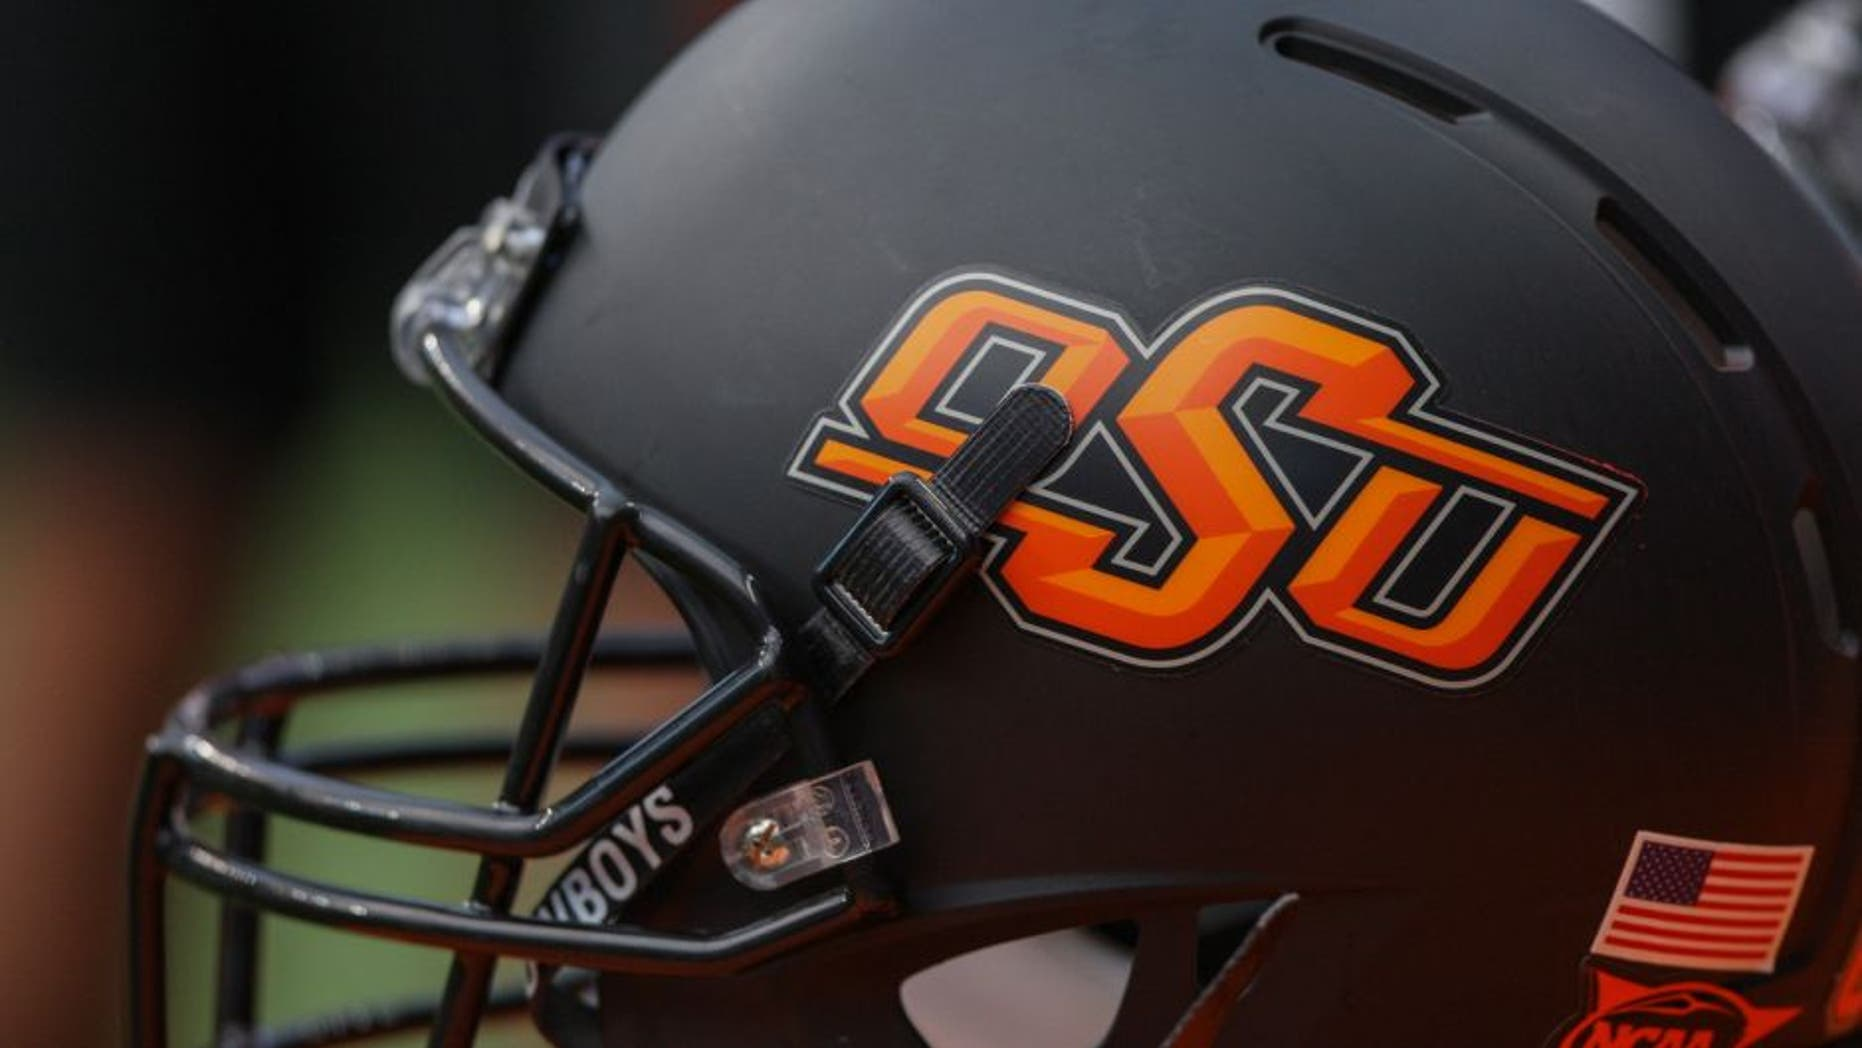 Aug 31, 2013; Houston, TX, USA; General view of an Oklahoma State Cowboys helmet during a game against the Mississippi State Bulldogs at Reliant Stadium. Mandatory Credit: Troy Taormina-USA TODAY Sports